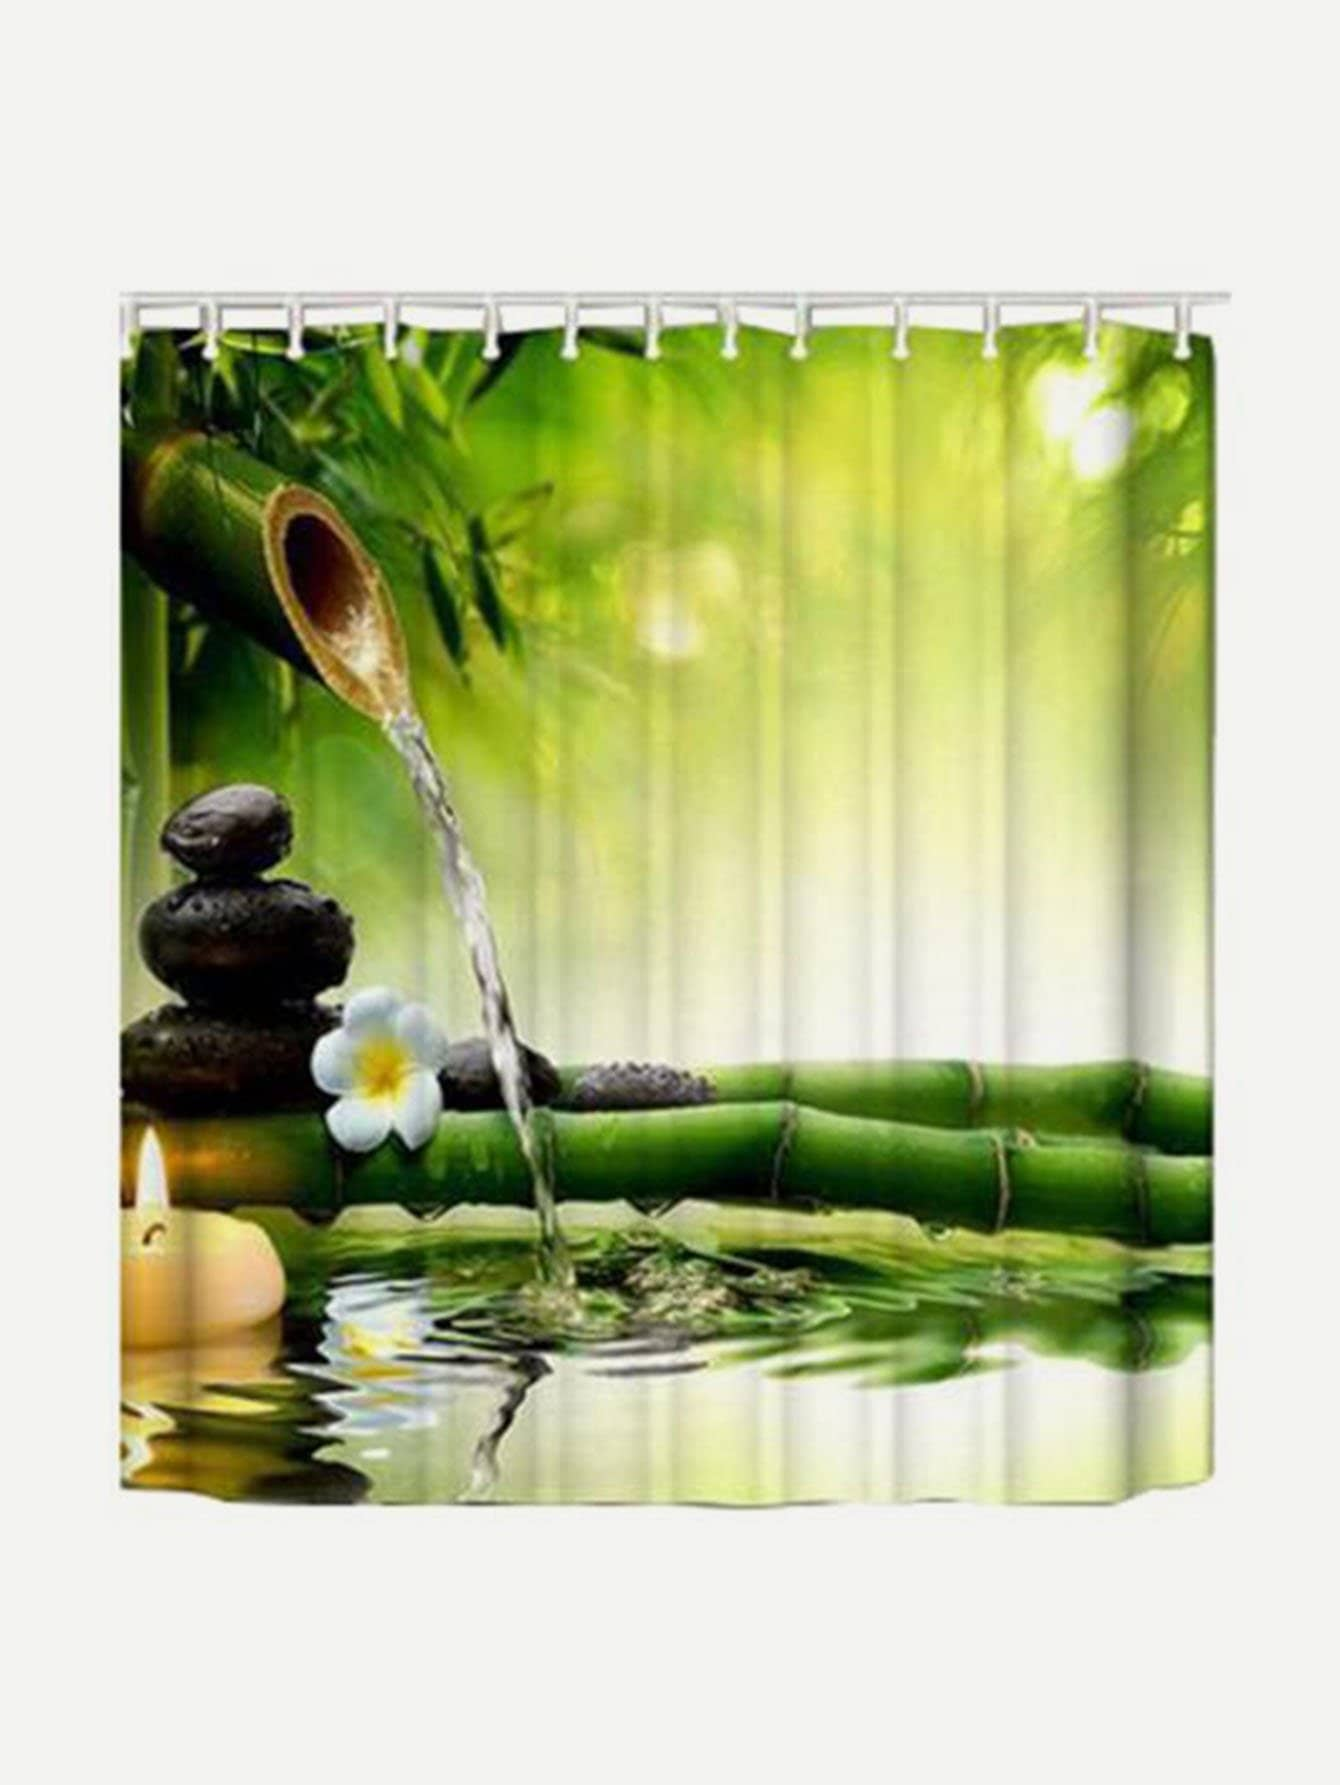 Bamboo Print Shower Curtain 1pc With Hook 12pcs female silhouette art print shower curtain